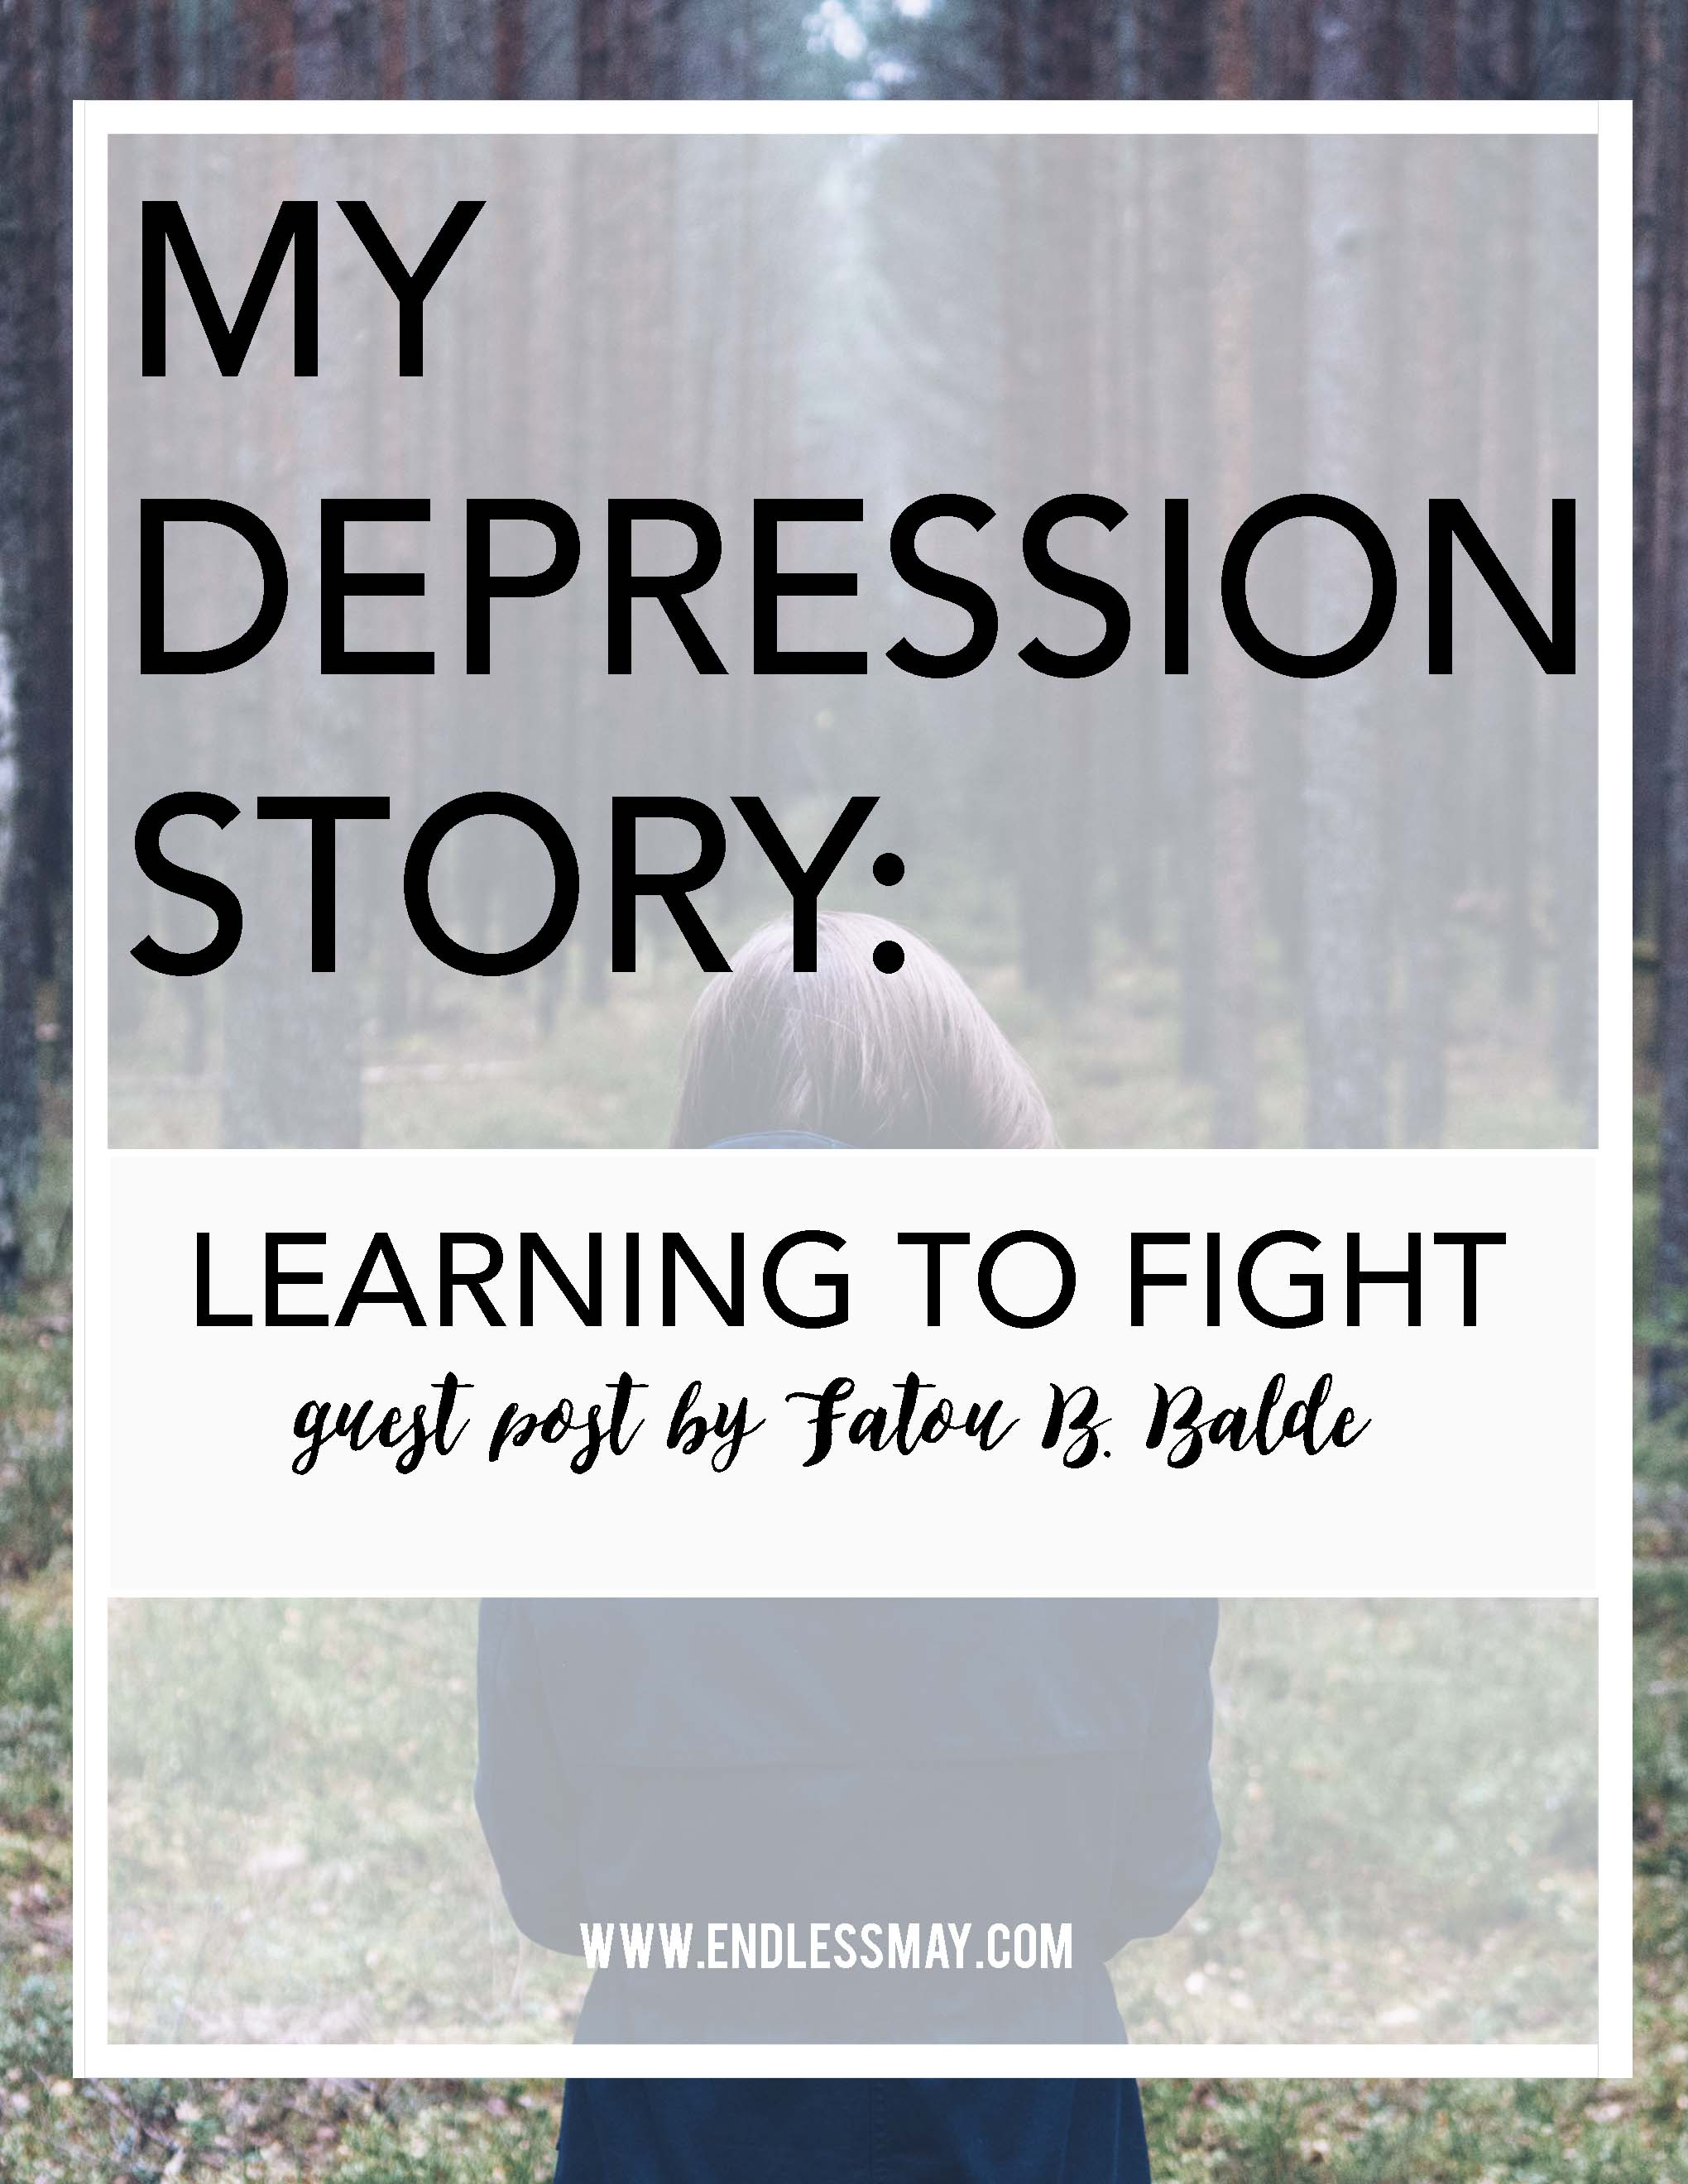 Dealing with depression in college is incredibly difficult. In this guest post, Fatou Balde shares her experiences with depression in order to bring awareness to other people.